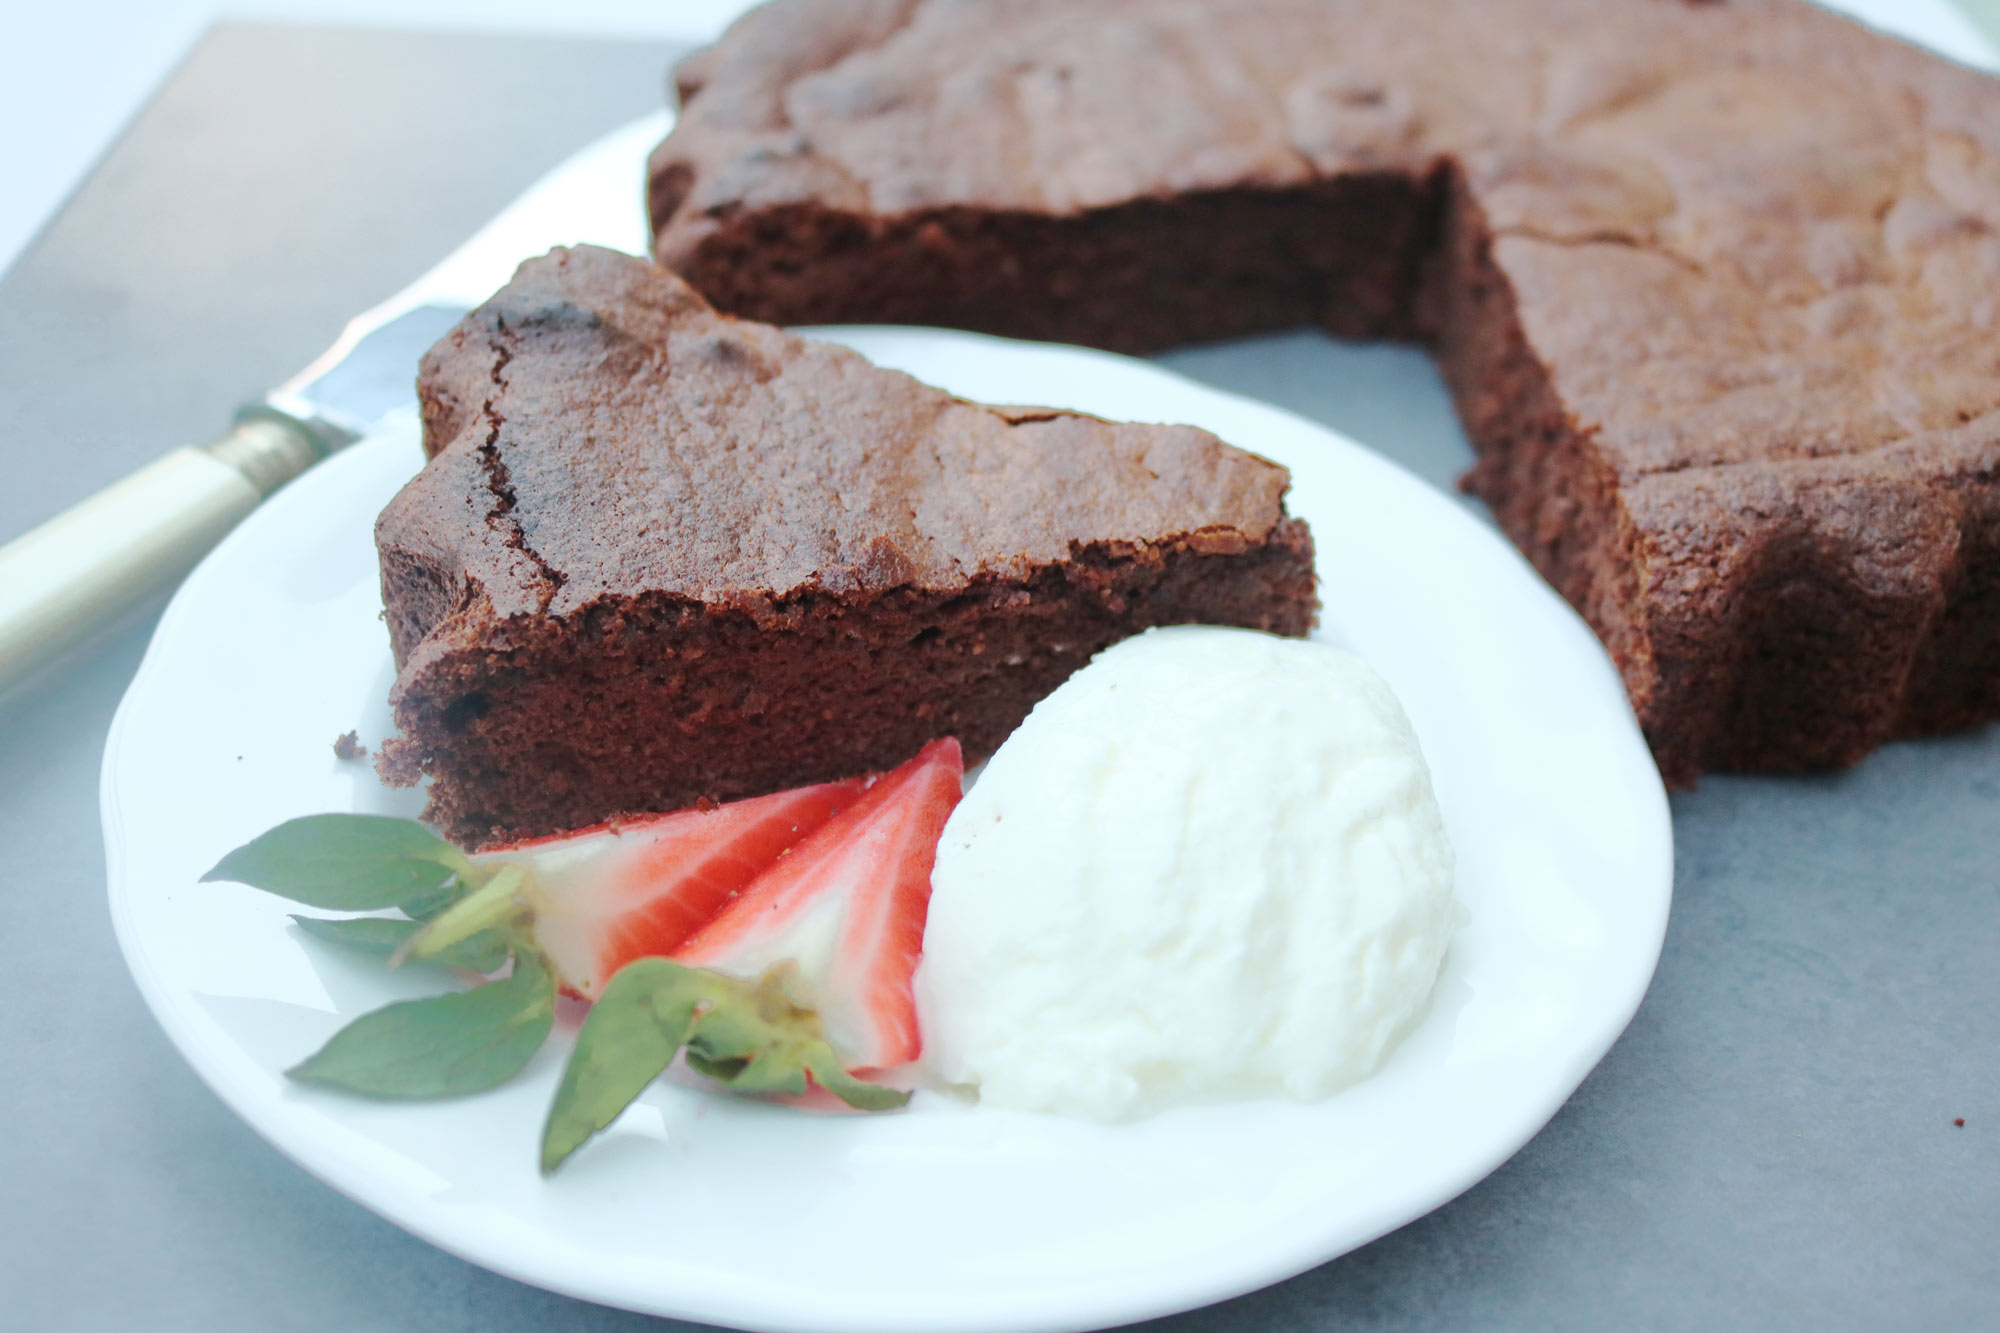 Almond and Carob Torte